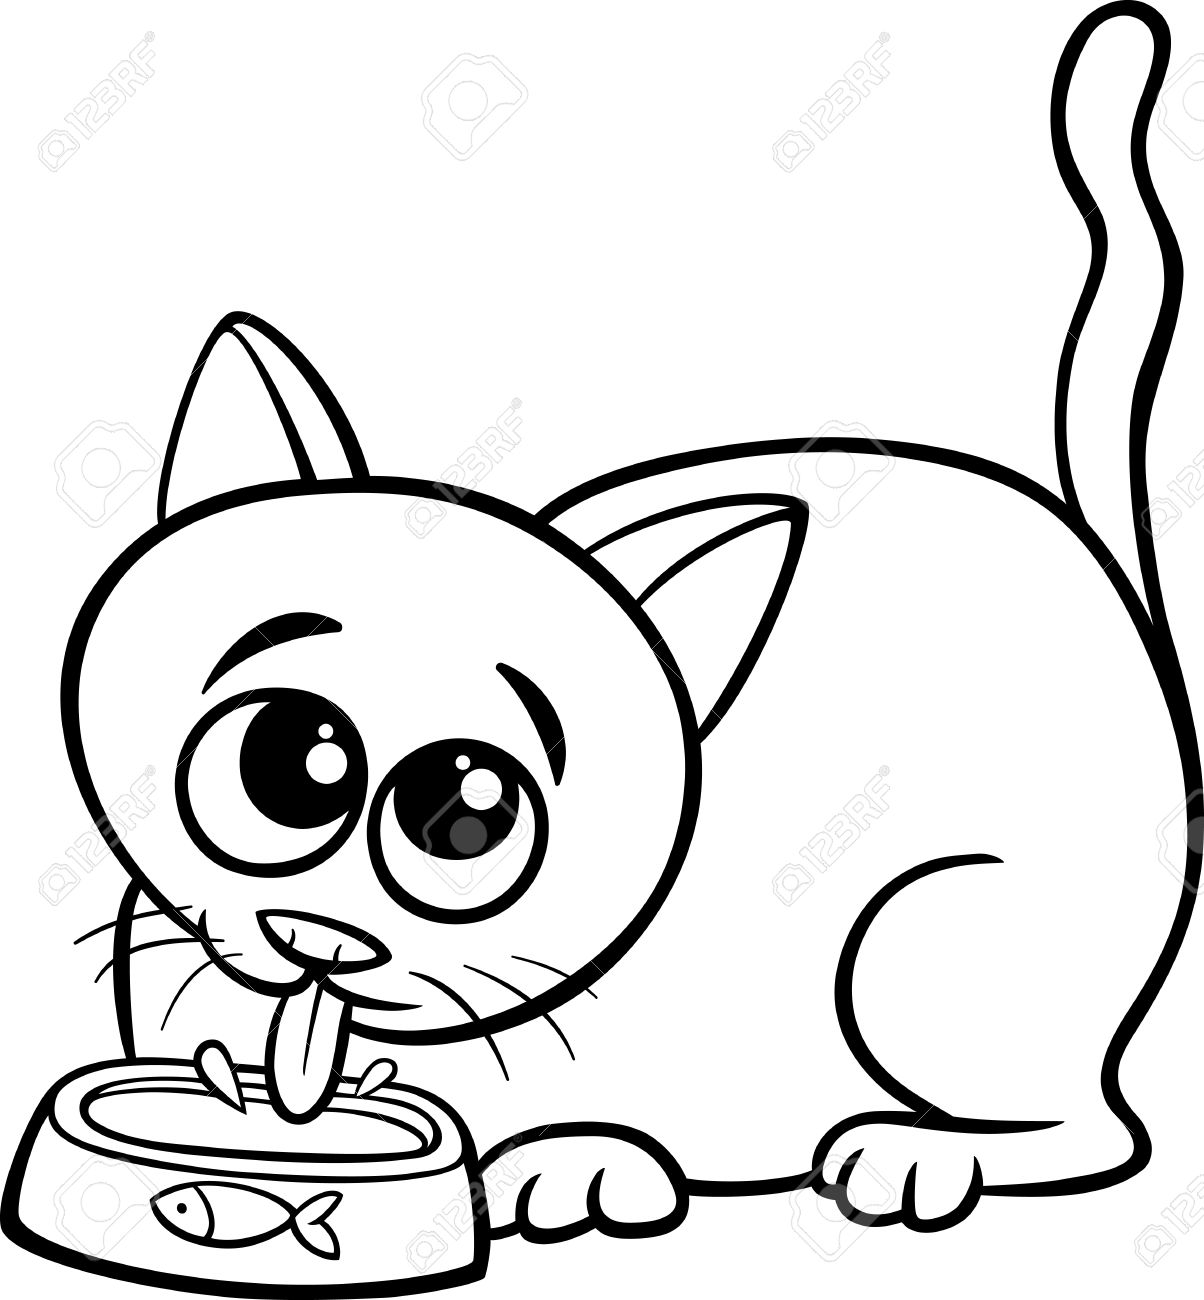 Cat Cartoon Drawing Black And White Black And White Cartoon